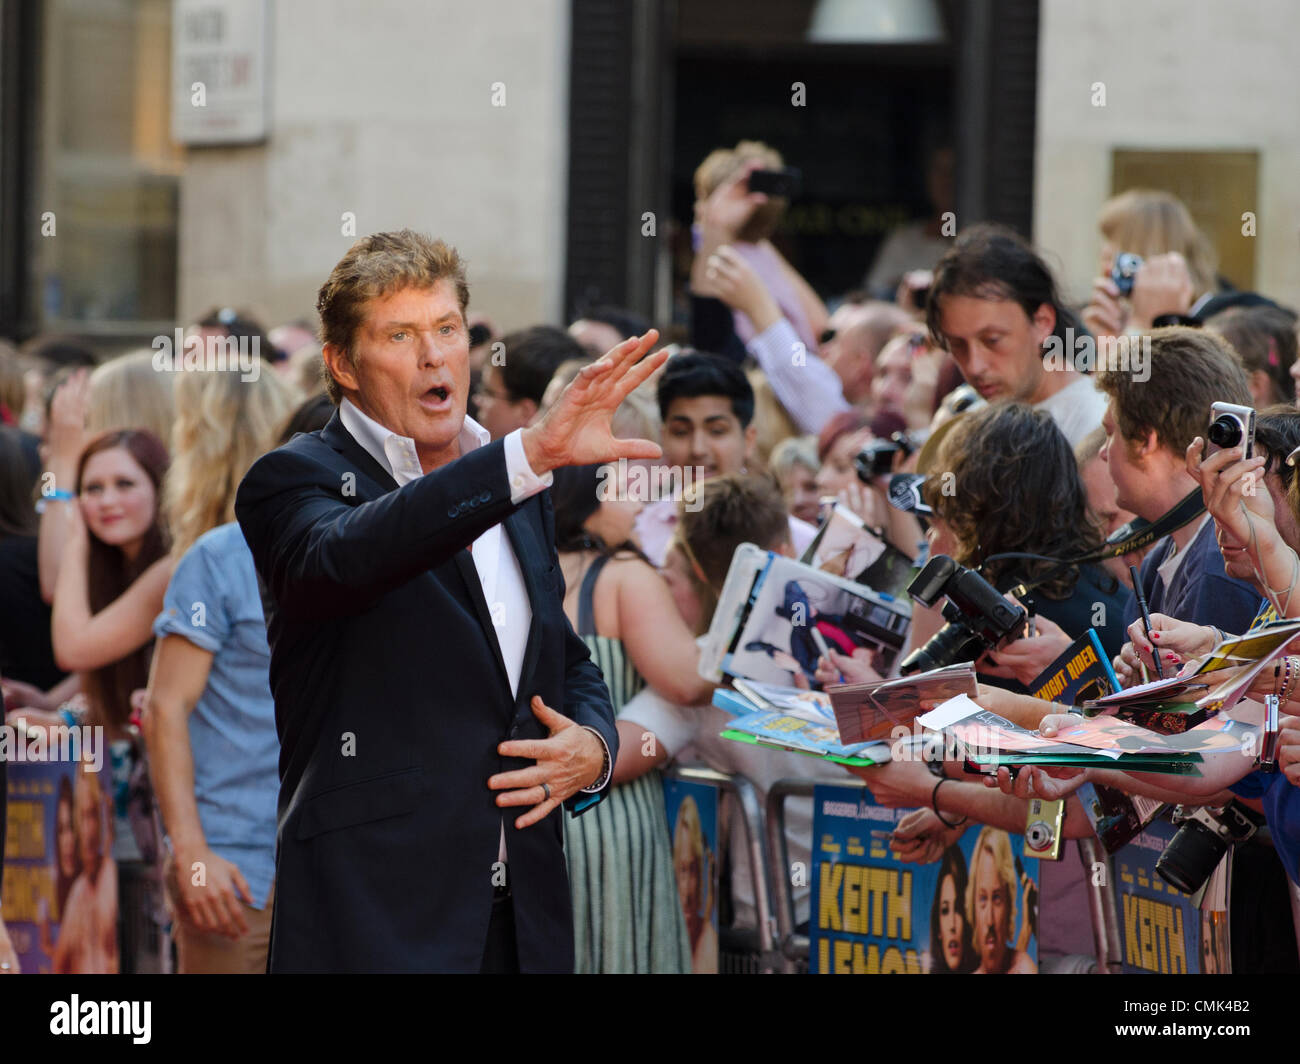 David Hasselhoff bei Keith Lemon Film, Premiere Odeon Leicester Square in London Uk Montag, 20. August 2012. Stockbild